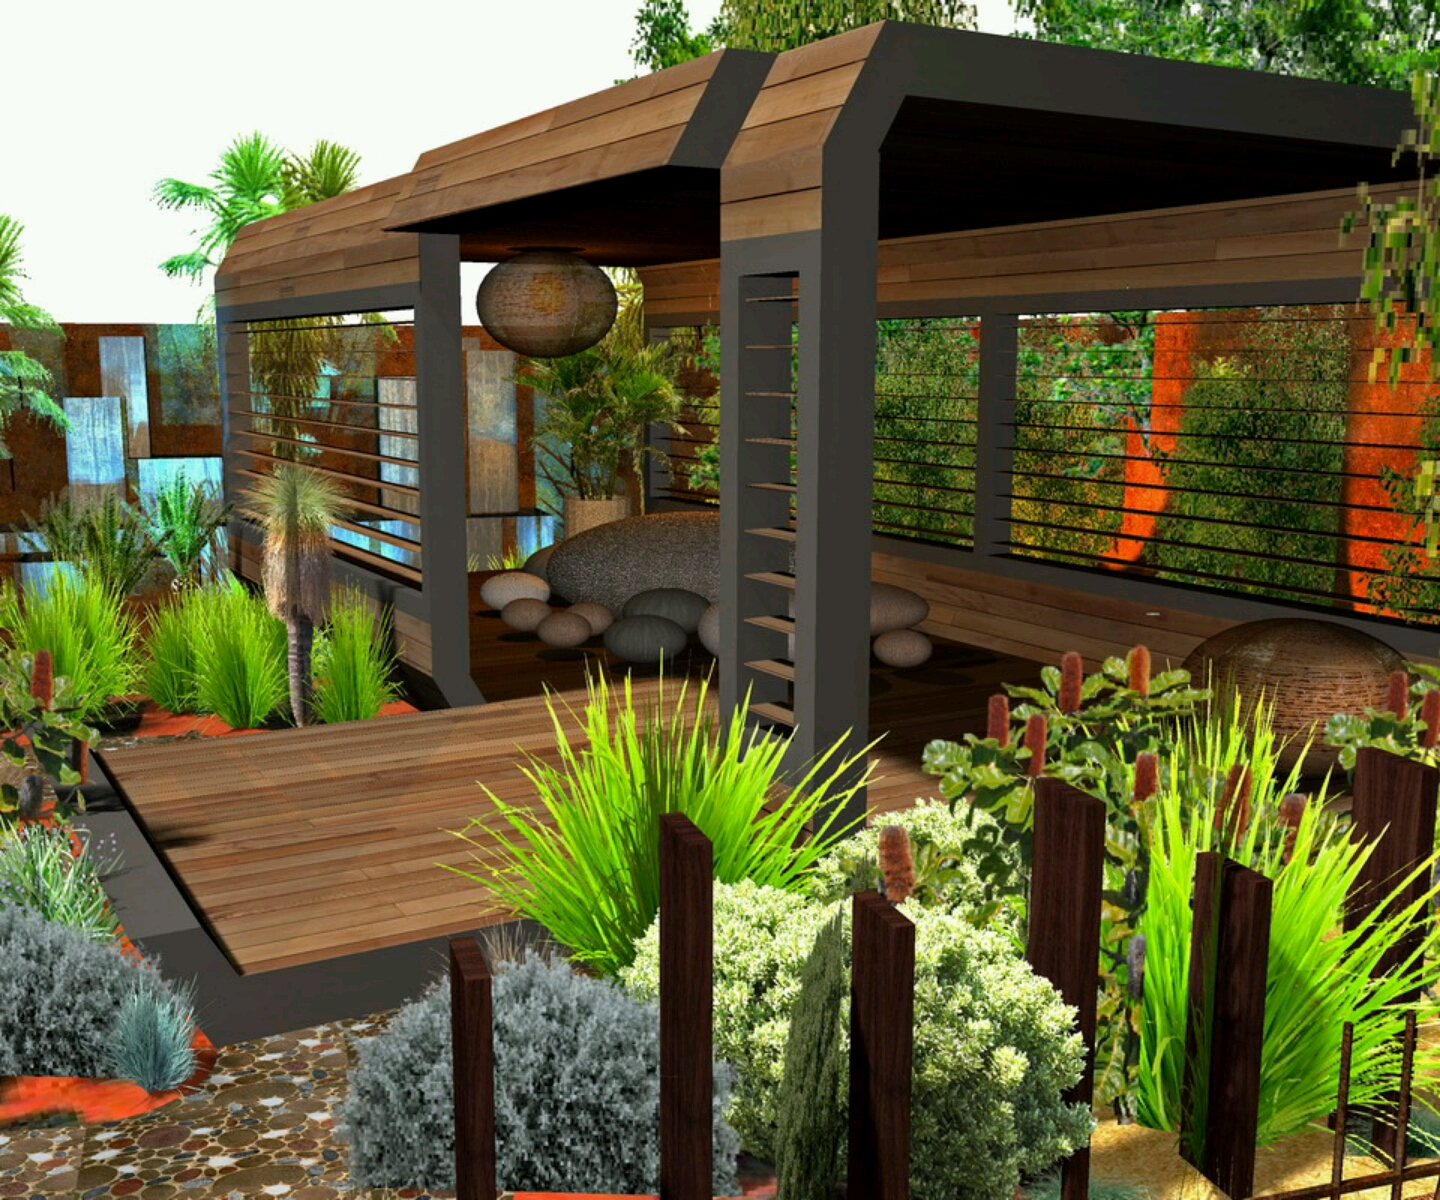 Home Garden Landscaping Ideas: Modern Homes Garden Designs Ideas.